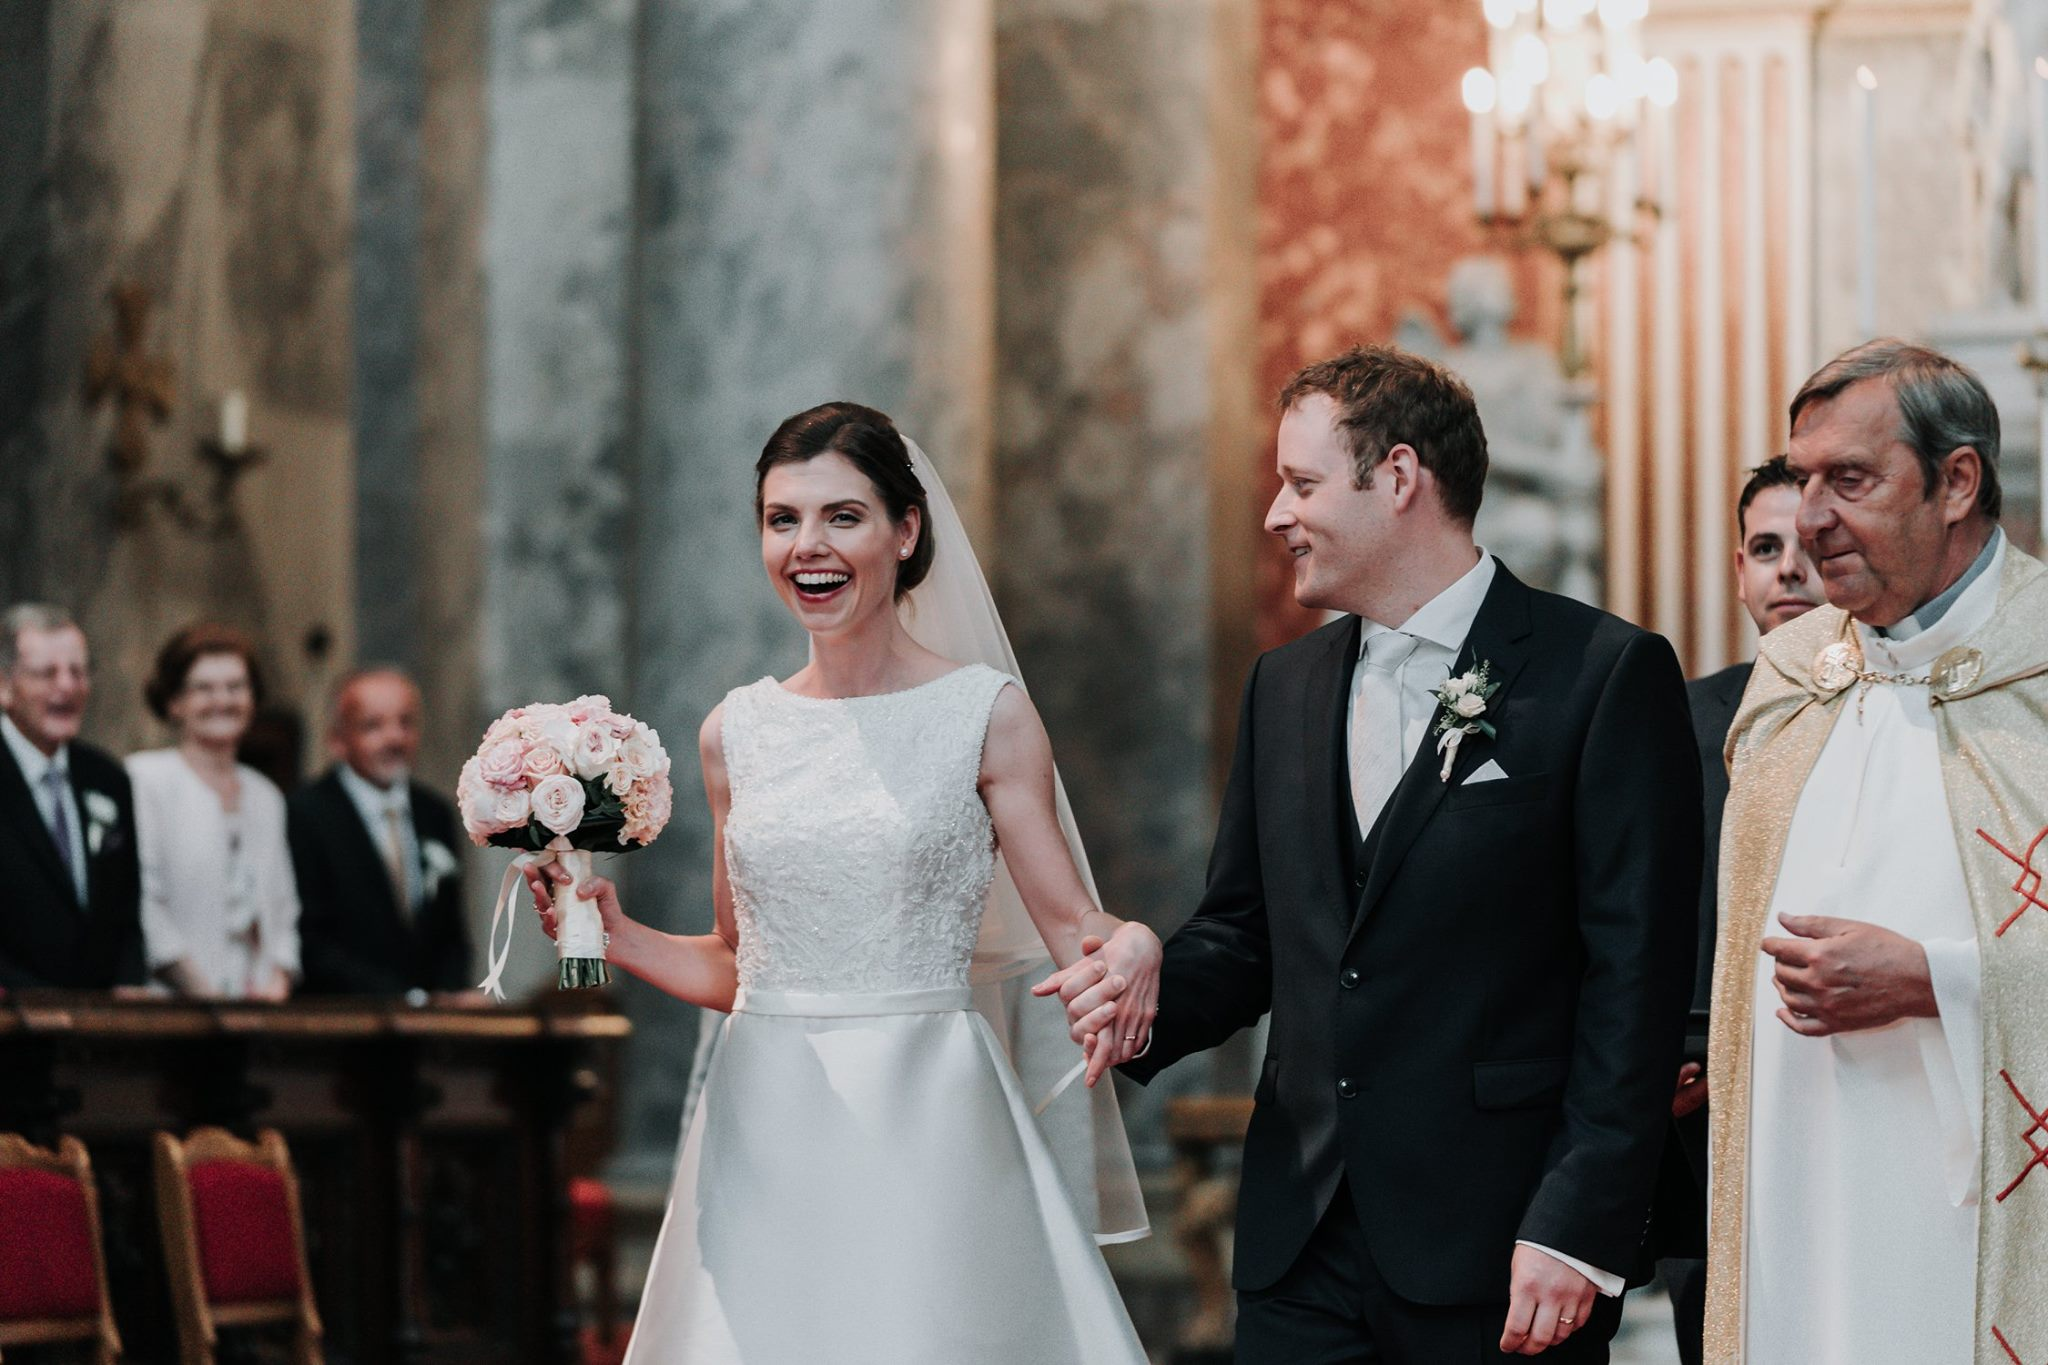 happy bride laughing after her wedding ceremony in the biggest church in Hungary, honest moment captured by photographed by award winning photographer Derek Chan from Black Avenue Productions